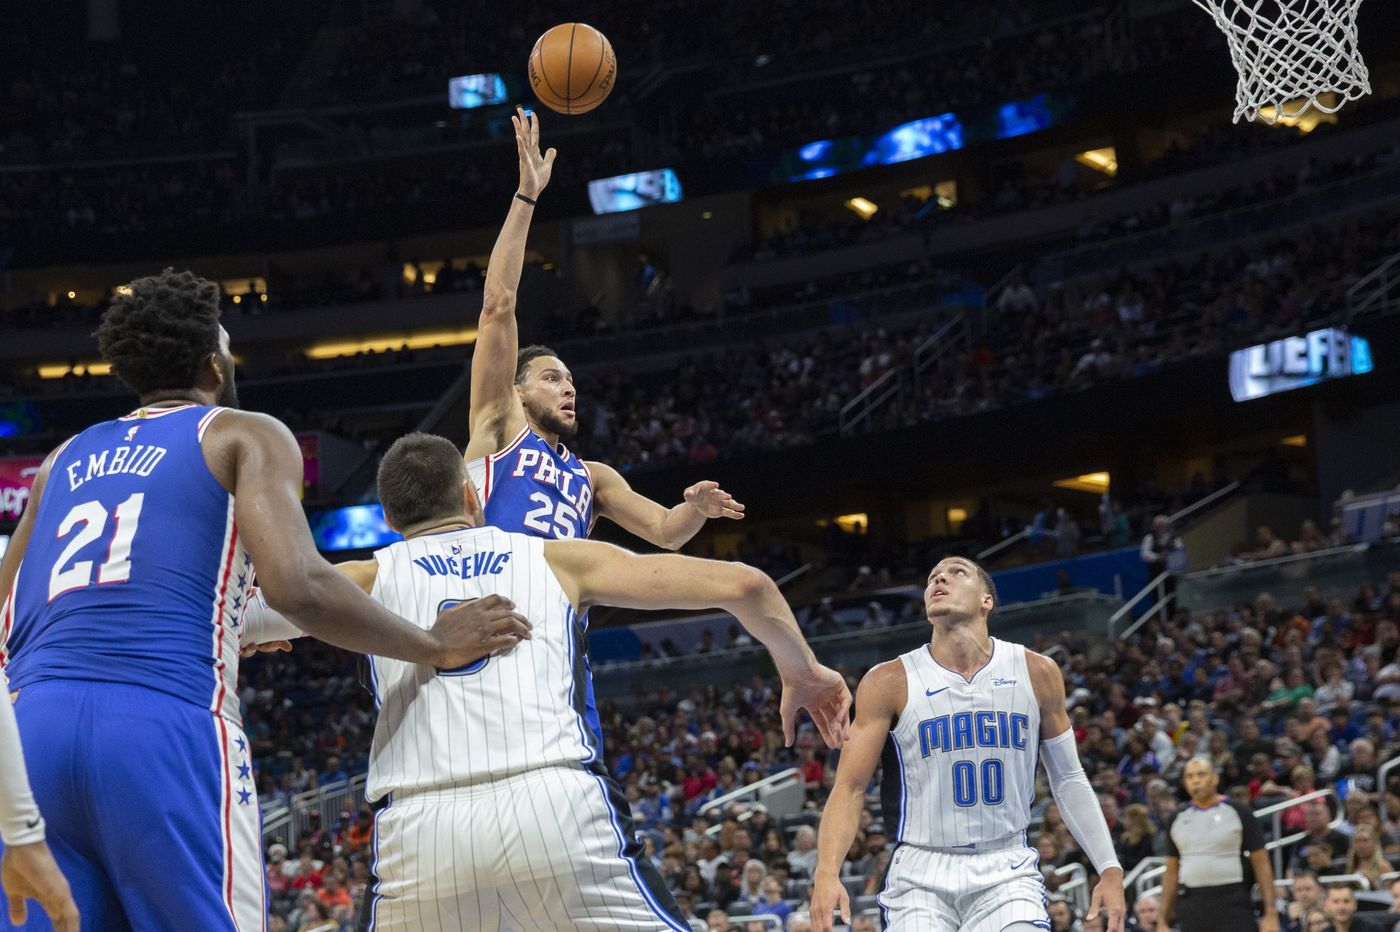 Do the Sixers have enough focus to earn home-court advantage in the playoffs?